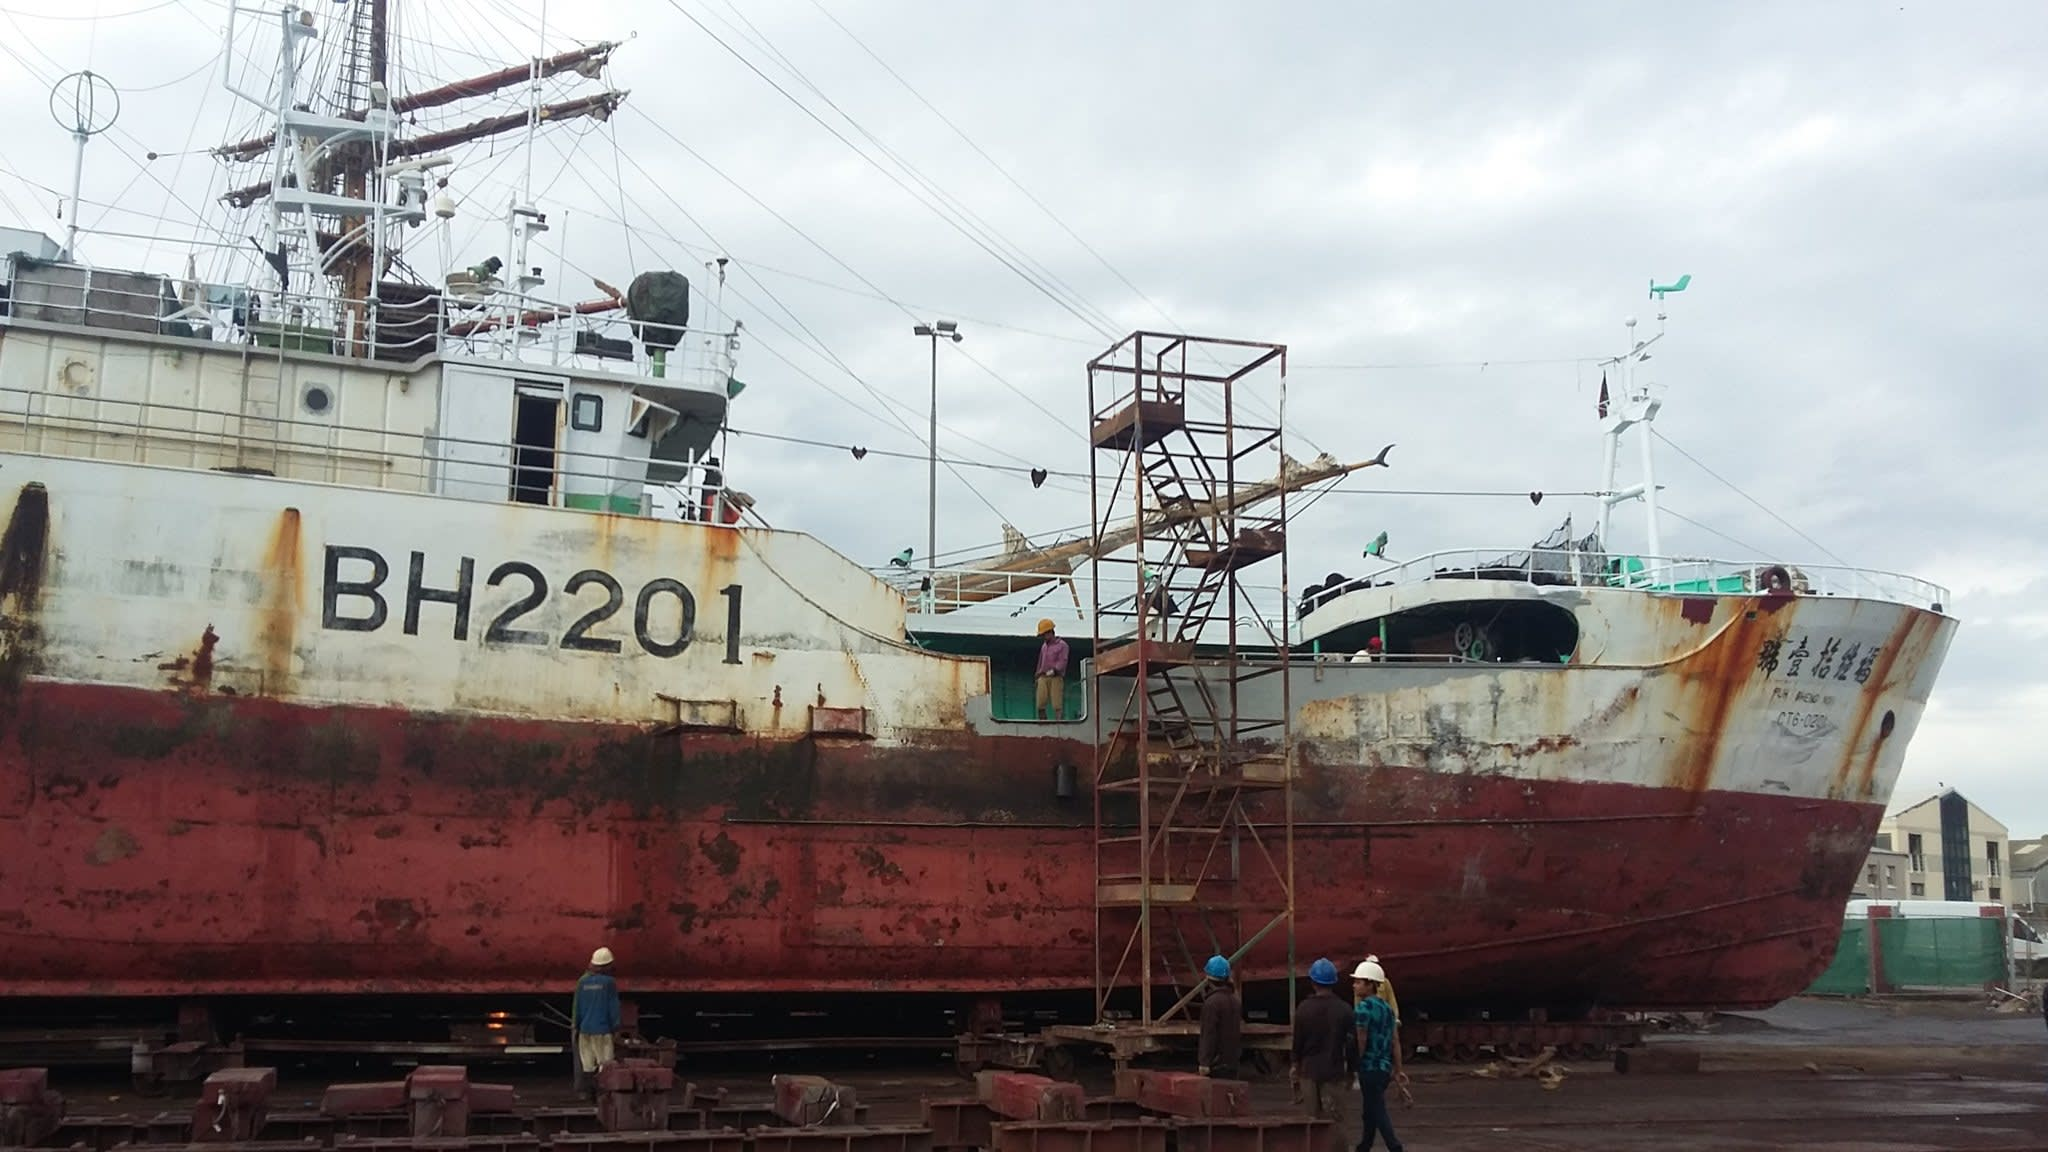 Taiwan's fishing industry faces claims of 'hell' on the high seas